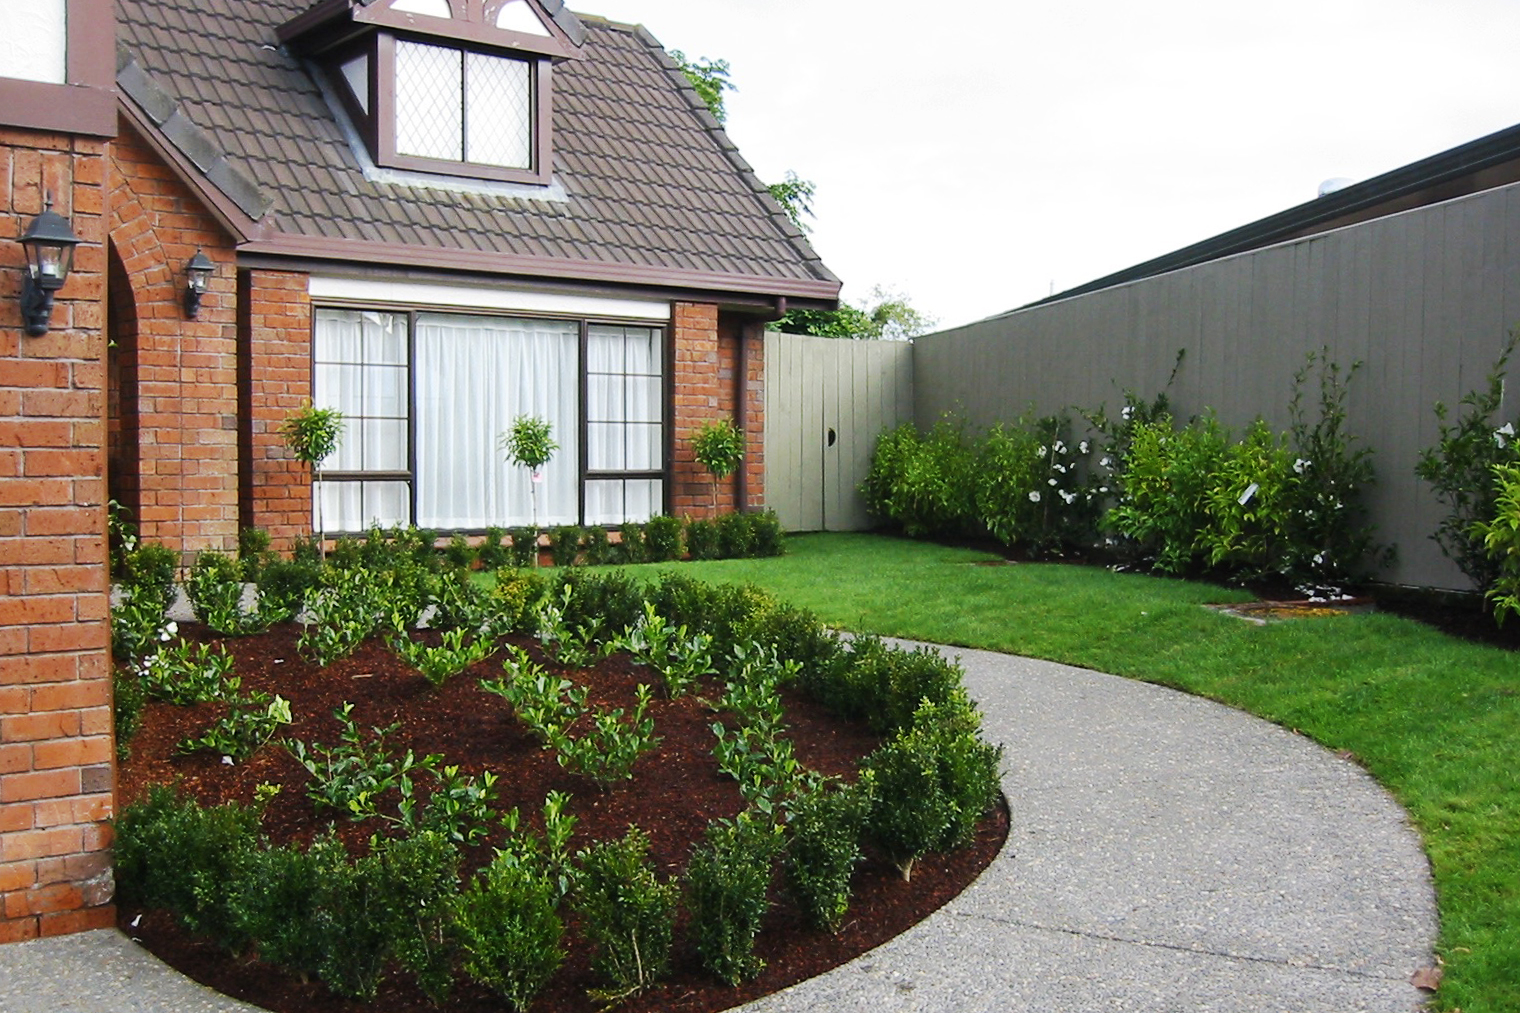 Completed soft landscaping and lawn